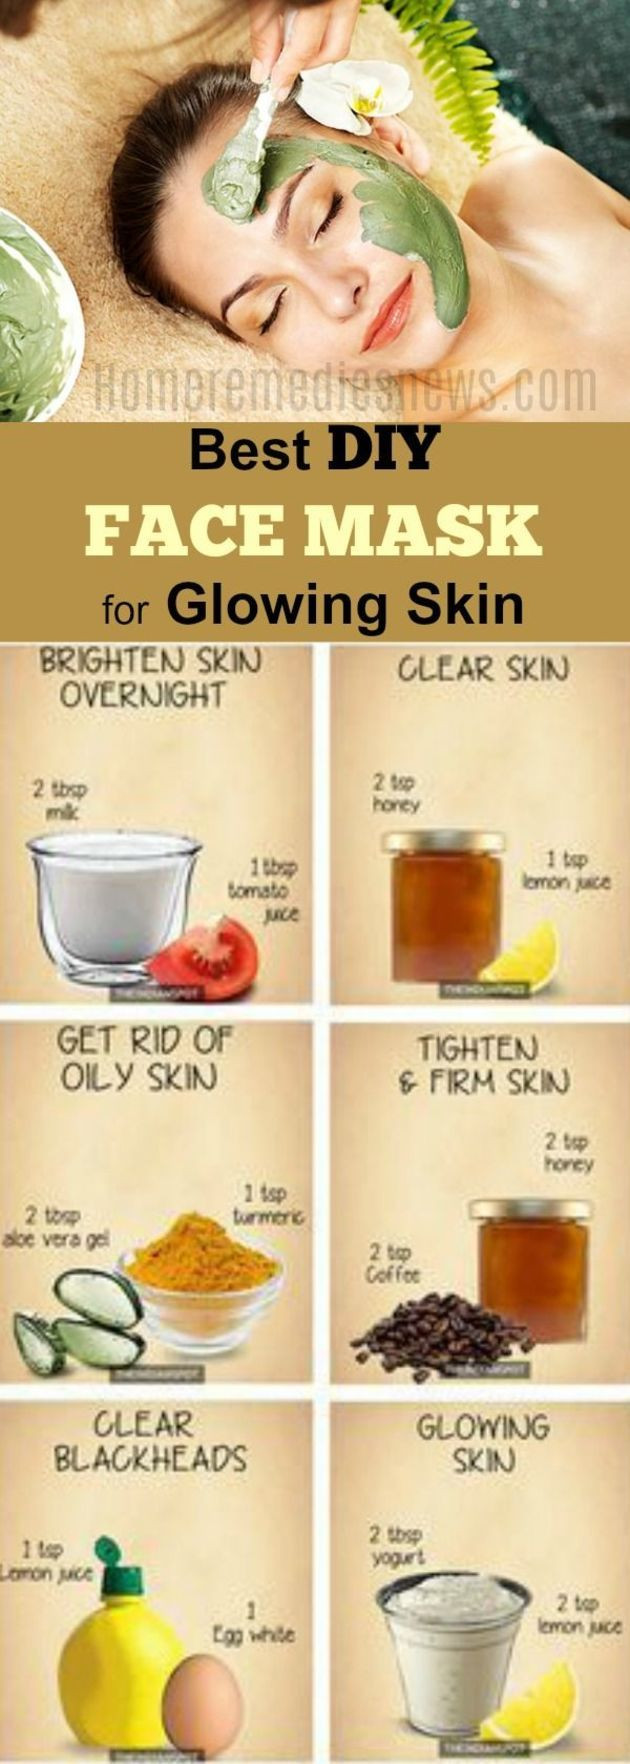 Best ideas about DIY Face Masks For Acne . Save or Pin Best 25 Homemade face masks ideas on Pinterest Now.